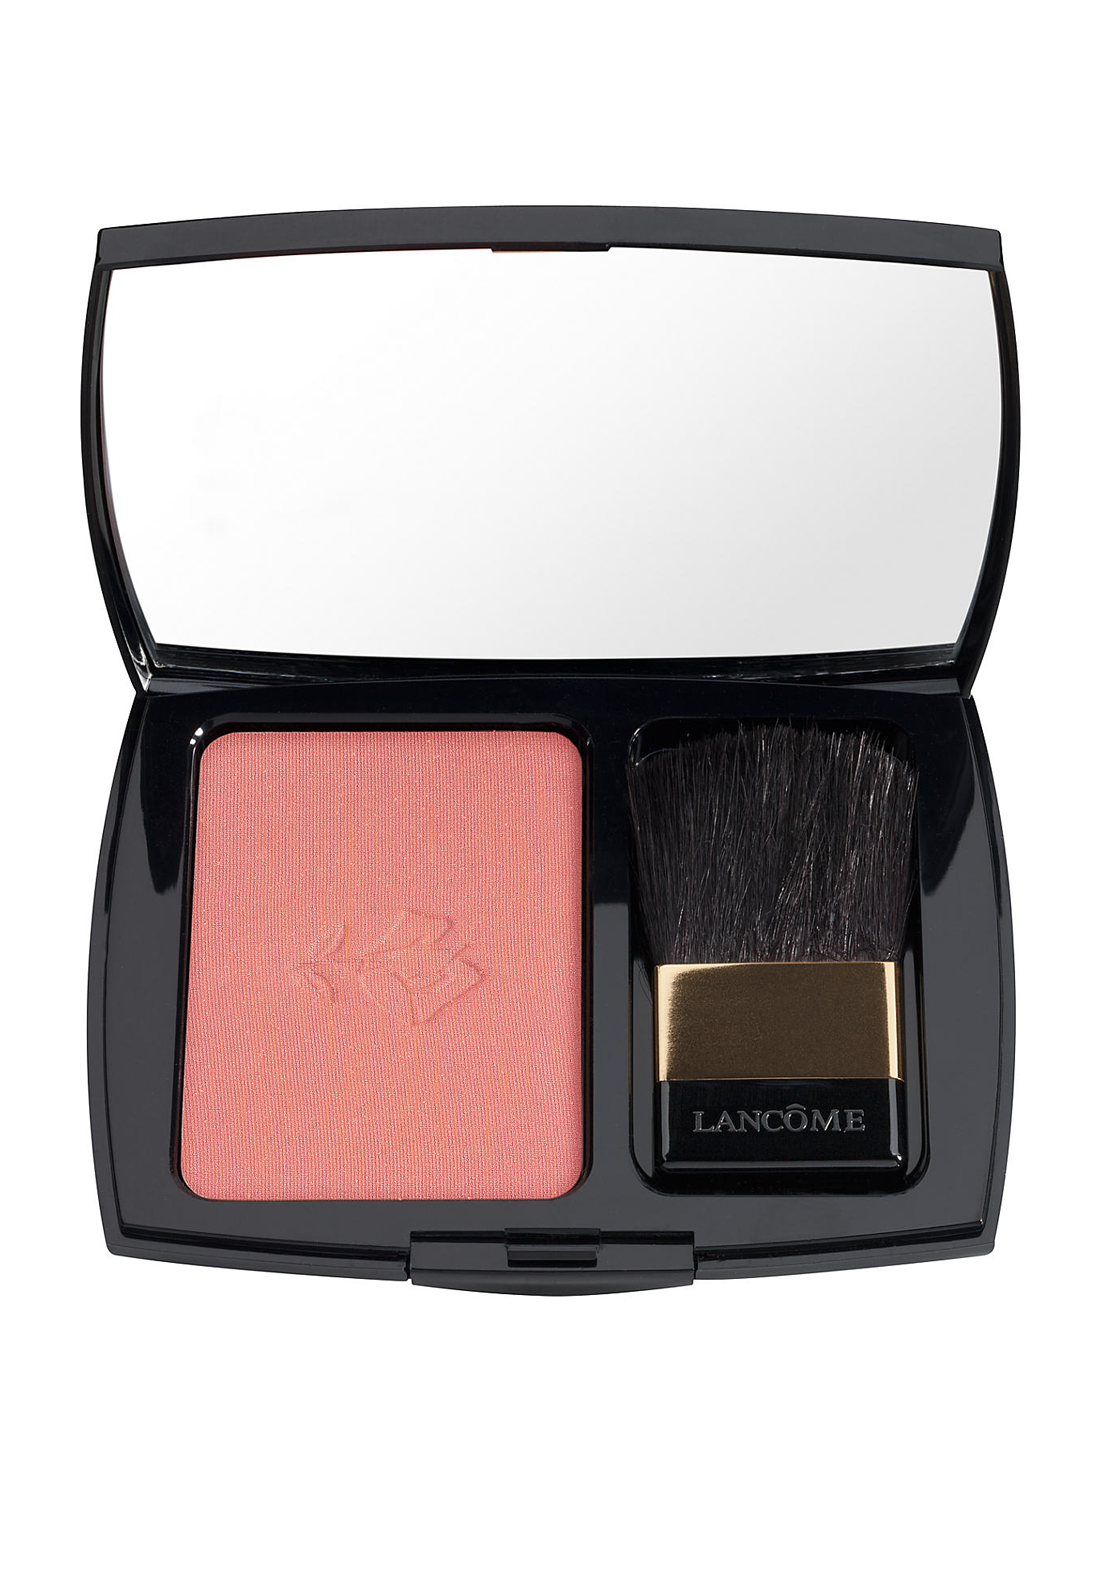 Lancome Blush Subtil Long Lasting Powder Blusher, 030